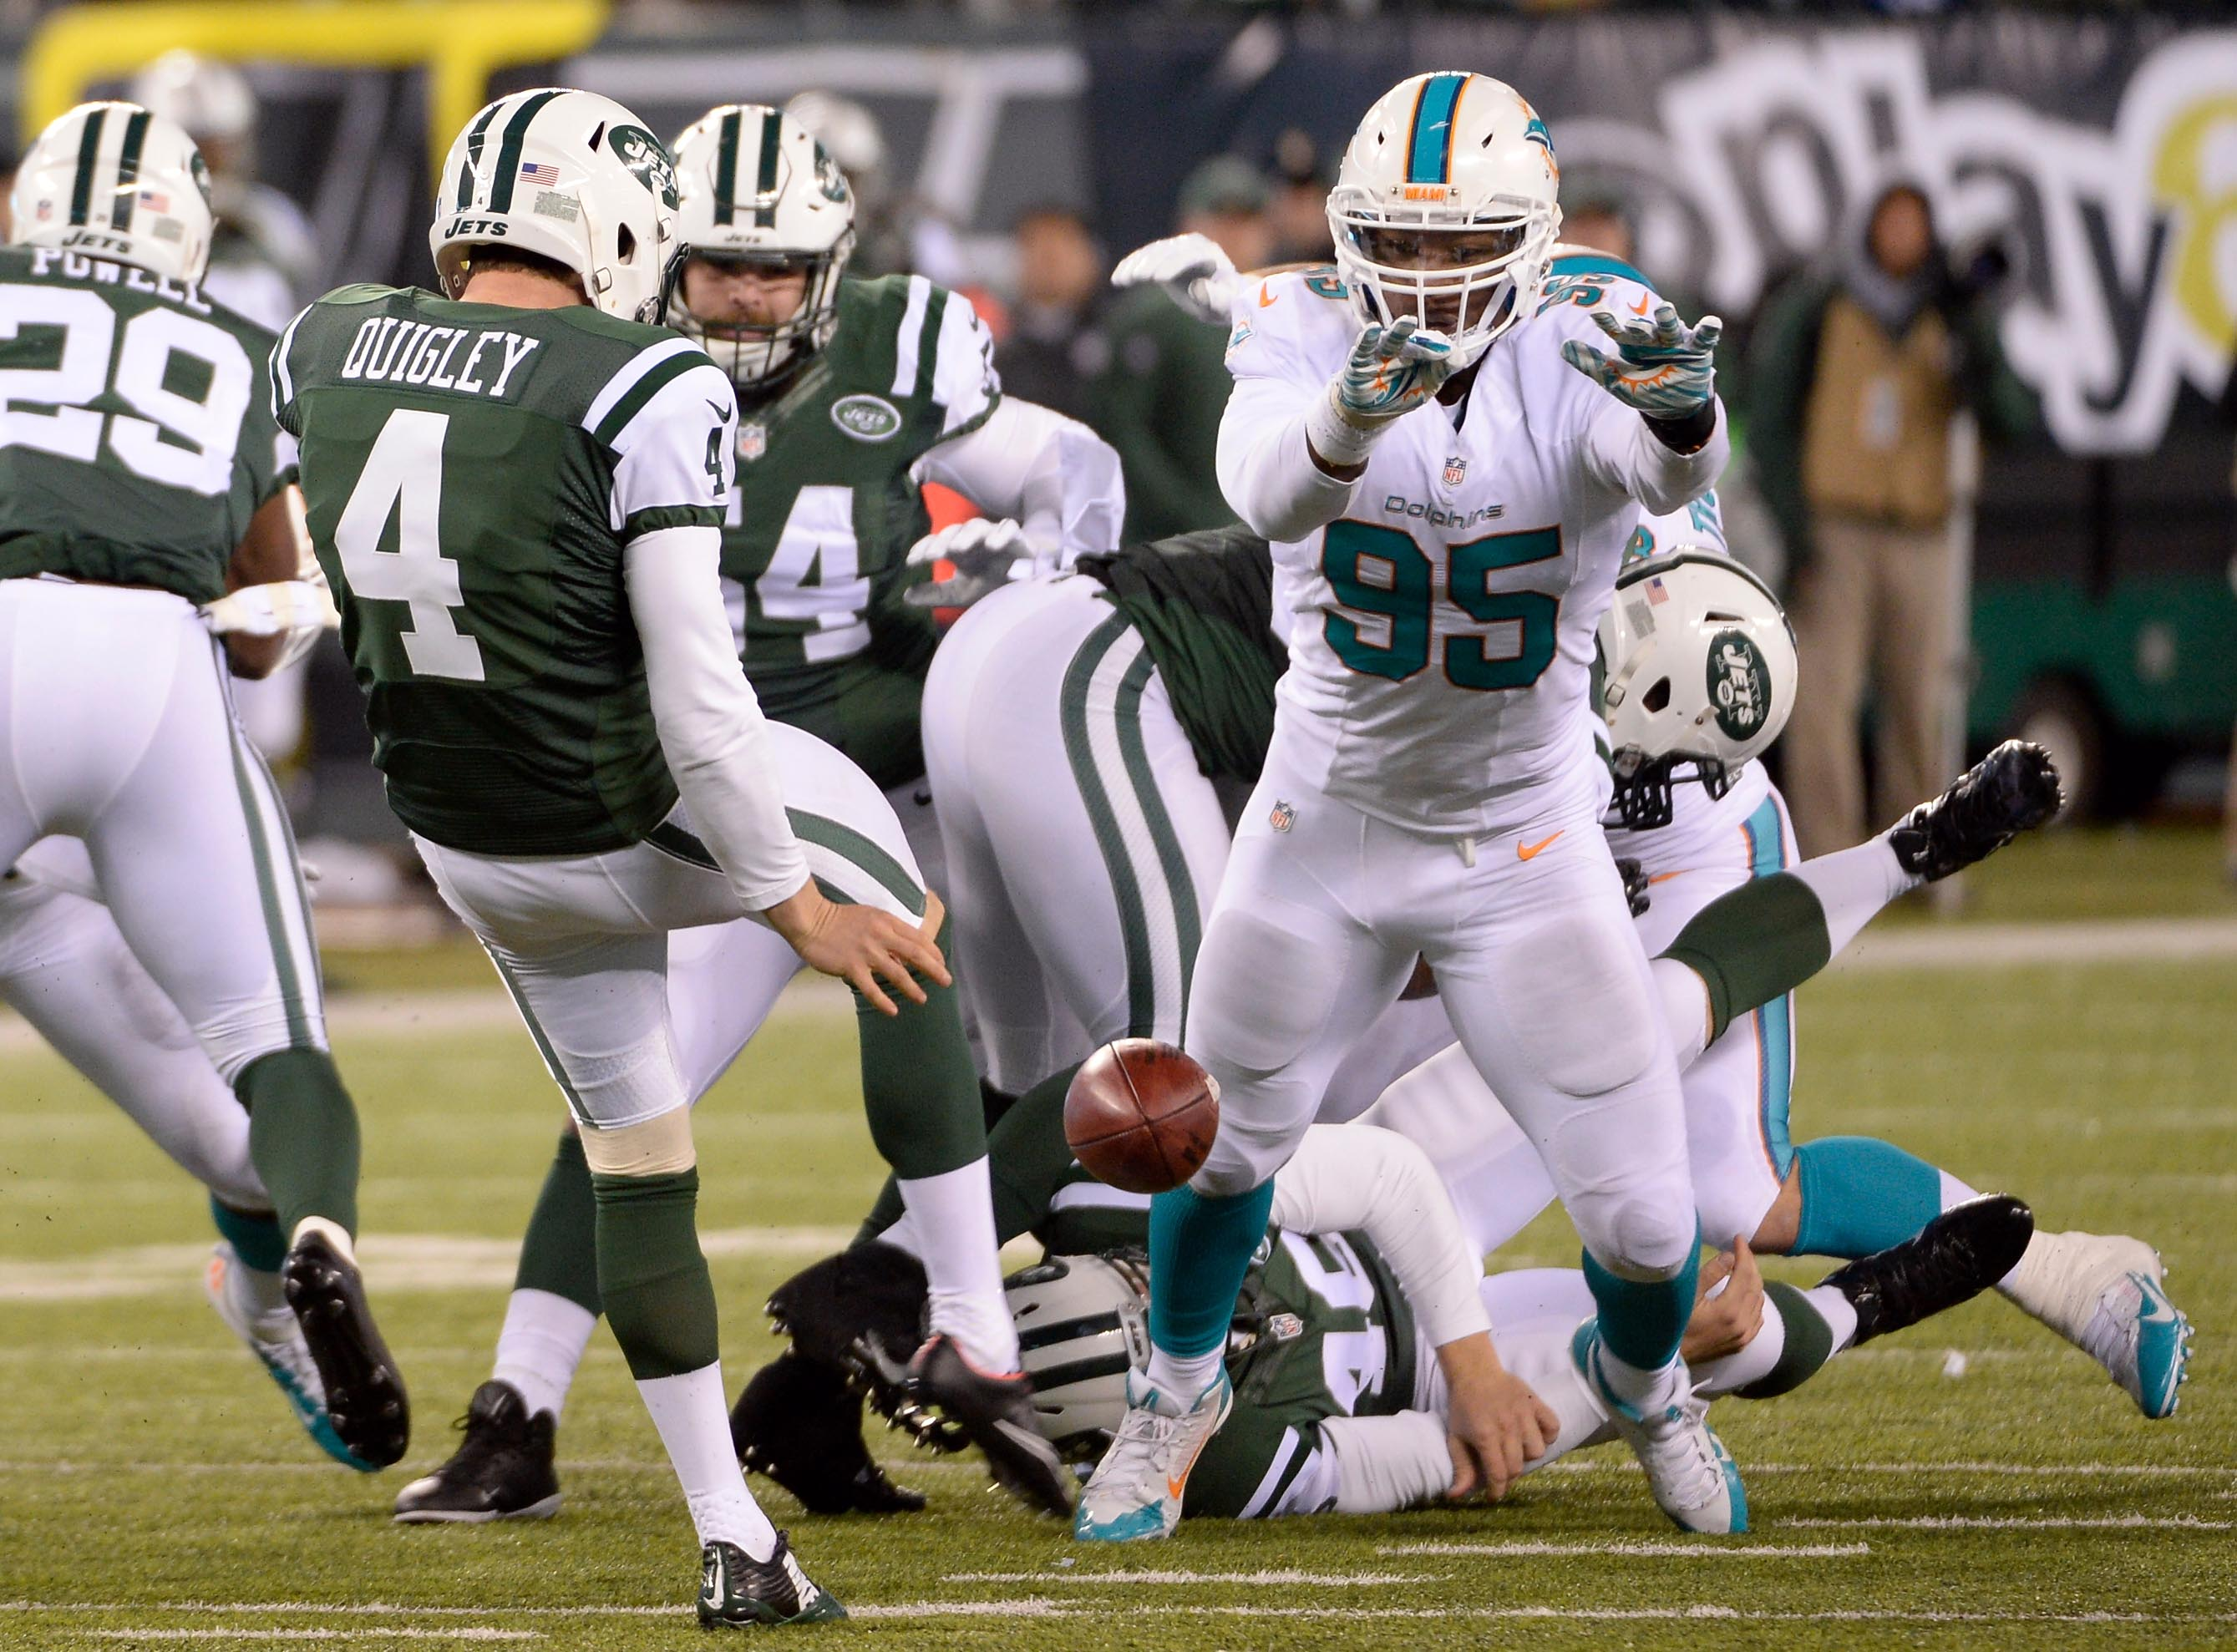 8243443-nfl-miami-dolphins-at-new-york-jets